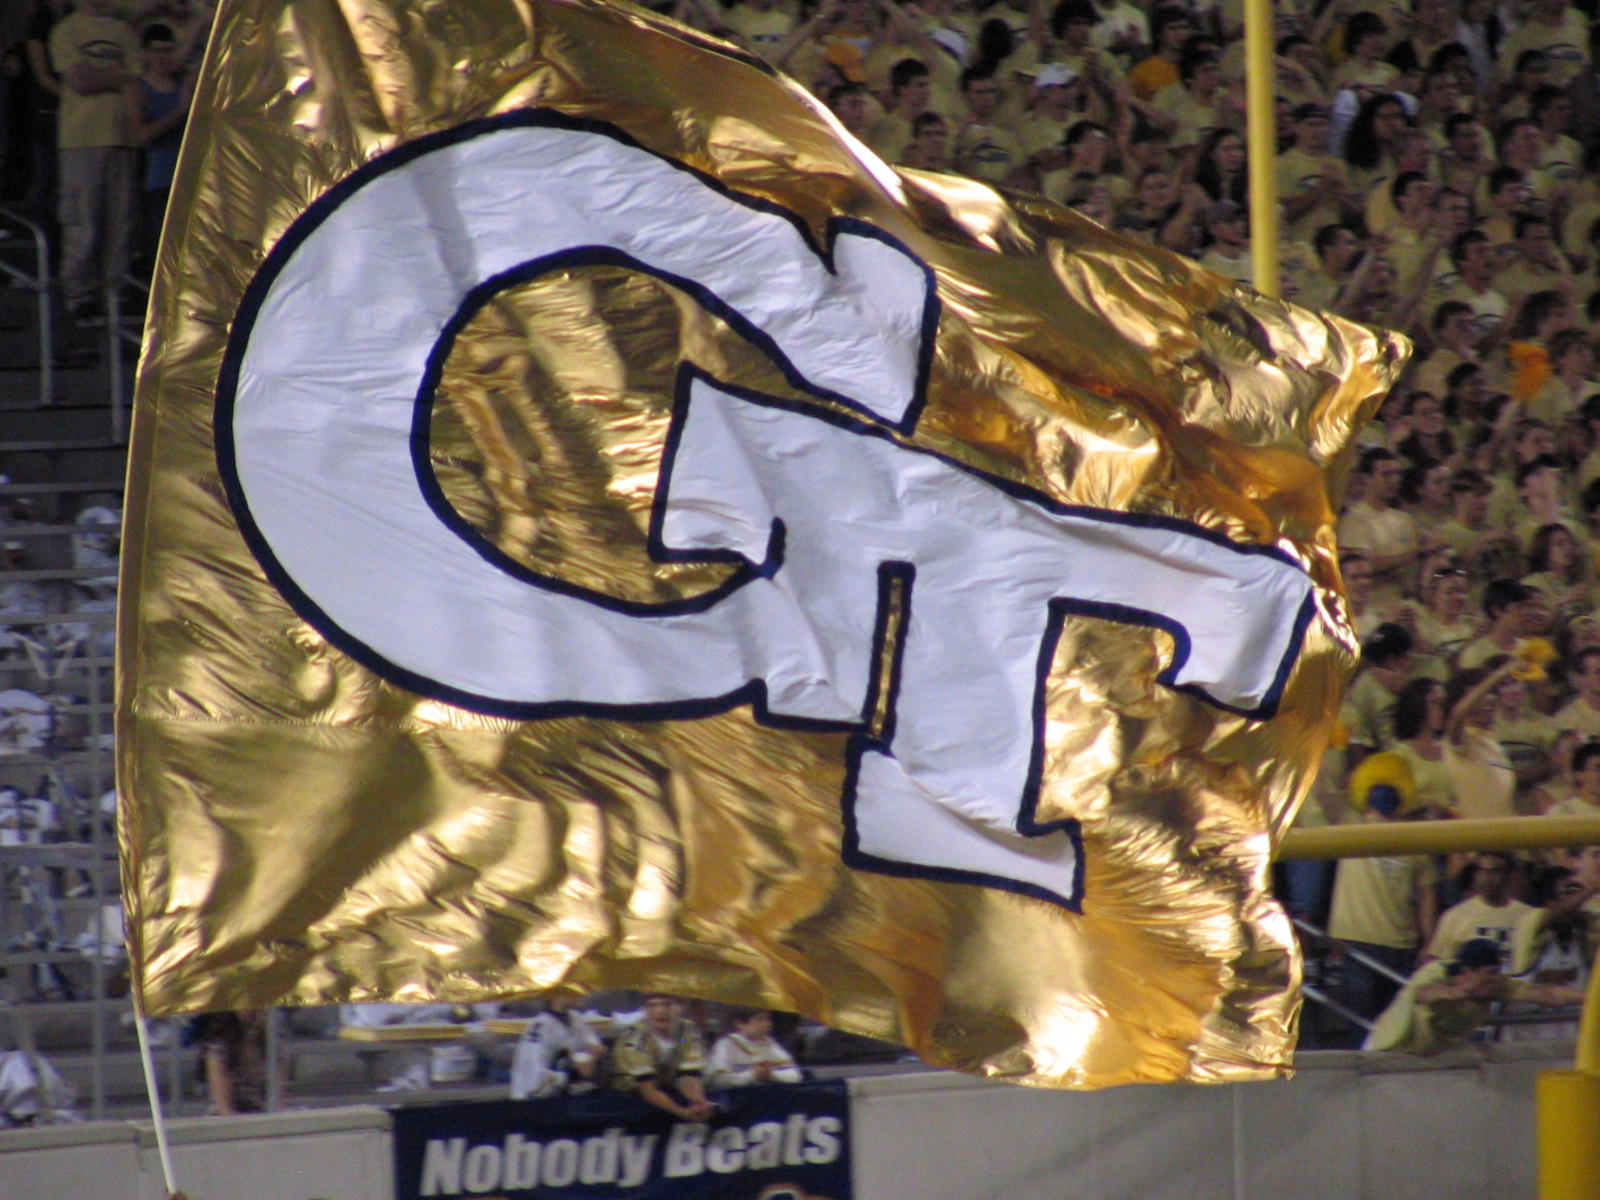 Georgia Tech getting New Uniforms for 2012 Season – to unveil at Opening Game Kickoff